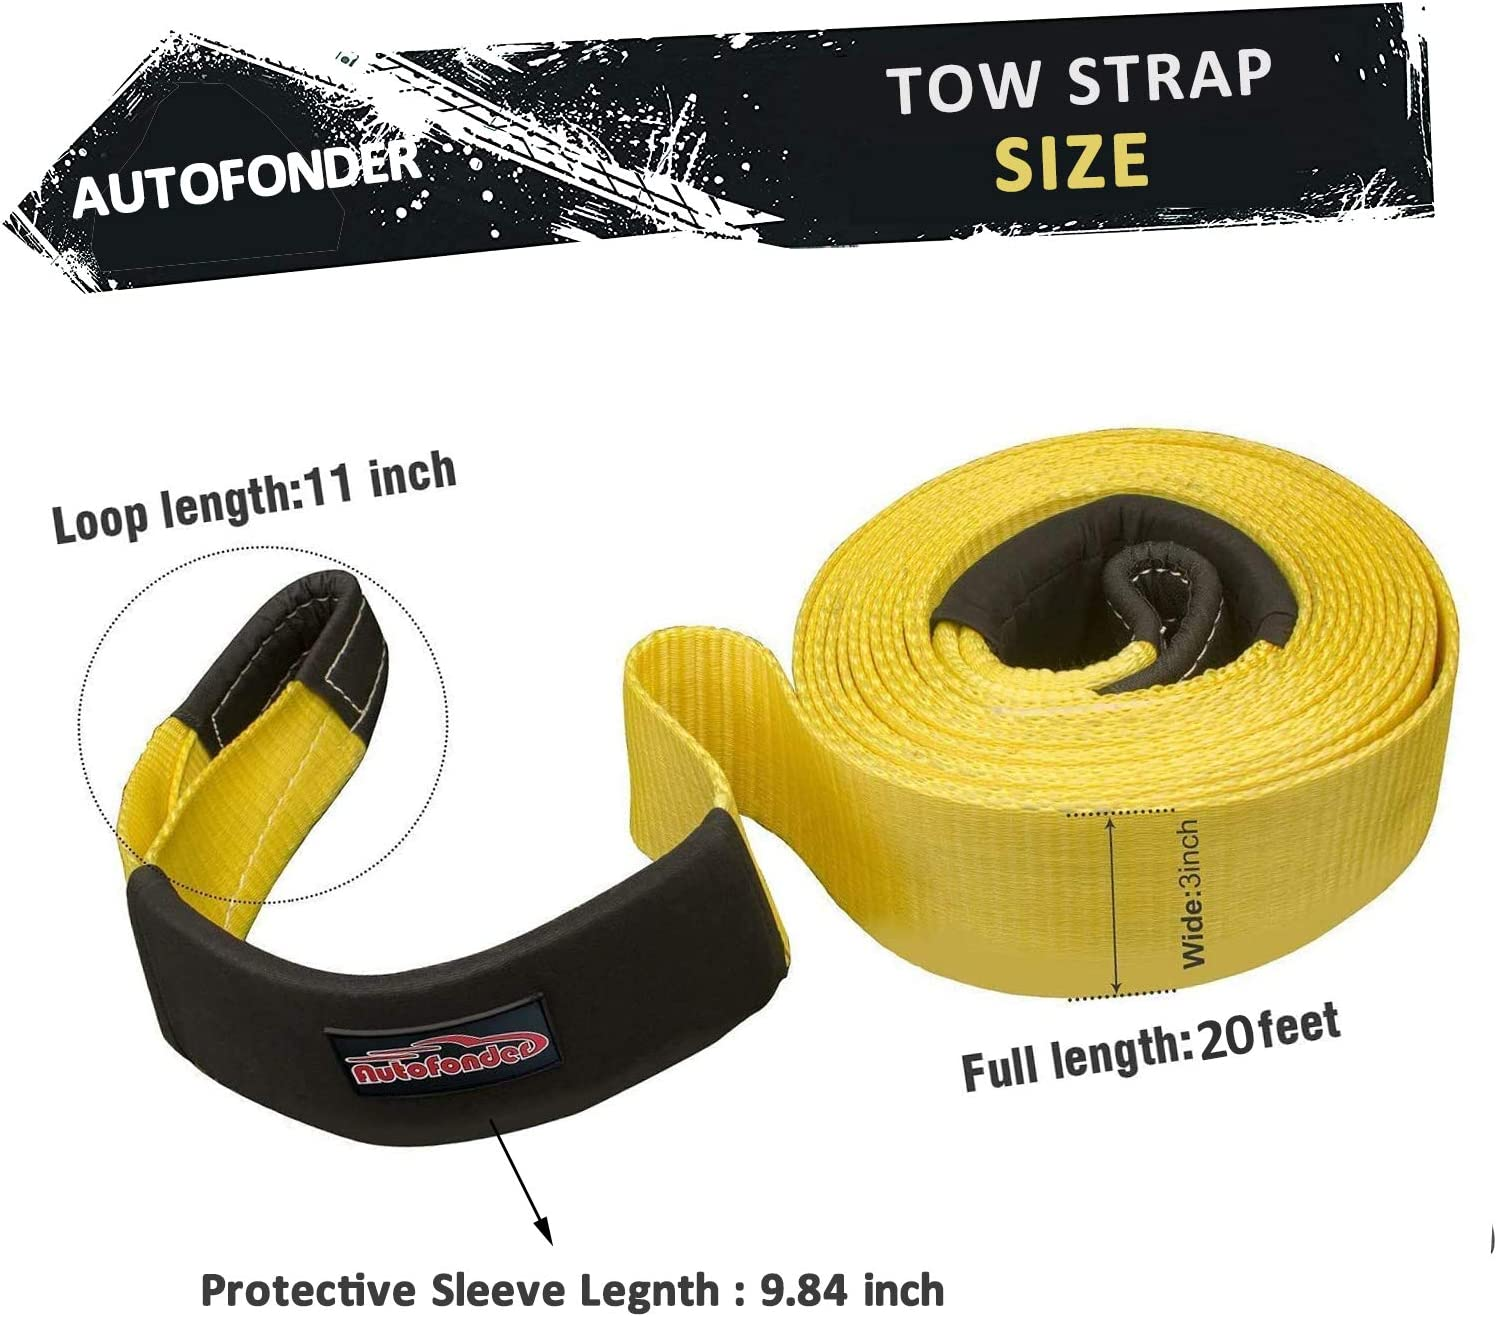 Autofonder Heavy Duty recovery Tow Strap Towing Belt Tow Rope up to 6 Meter Long With 2 safety Hooks and Storage Bag Protective Sleeves Emergency Off Road Yellow